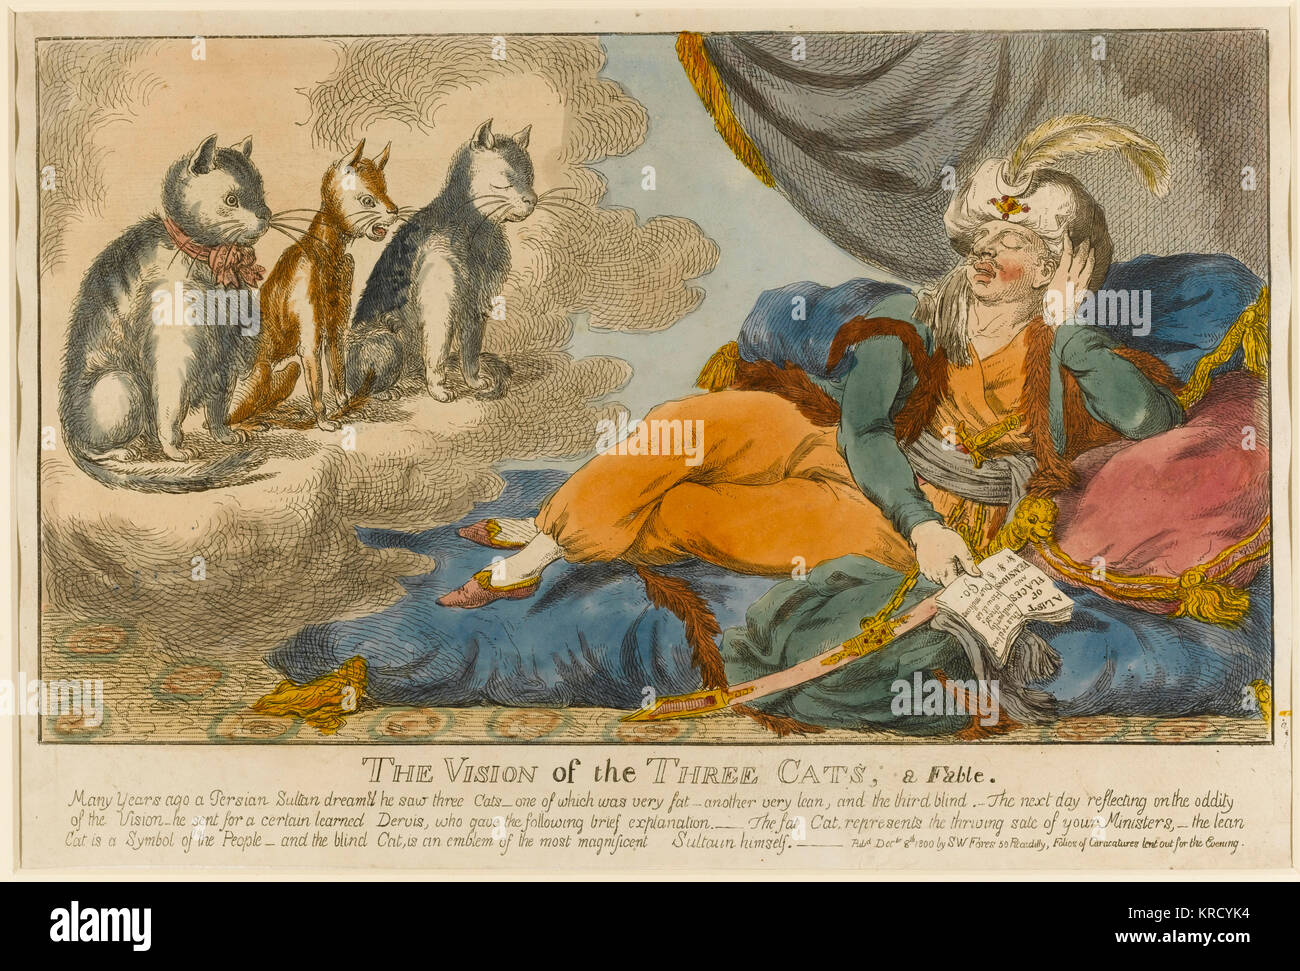 Satirical cartoon, The Vision of the three Cats, a Fable. In a dream a Persian sultan (King George III) has an apparition - Stock Image